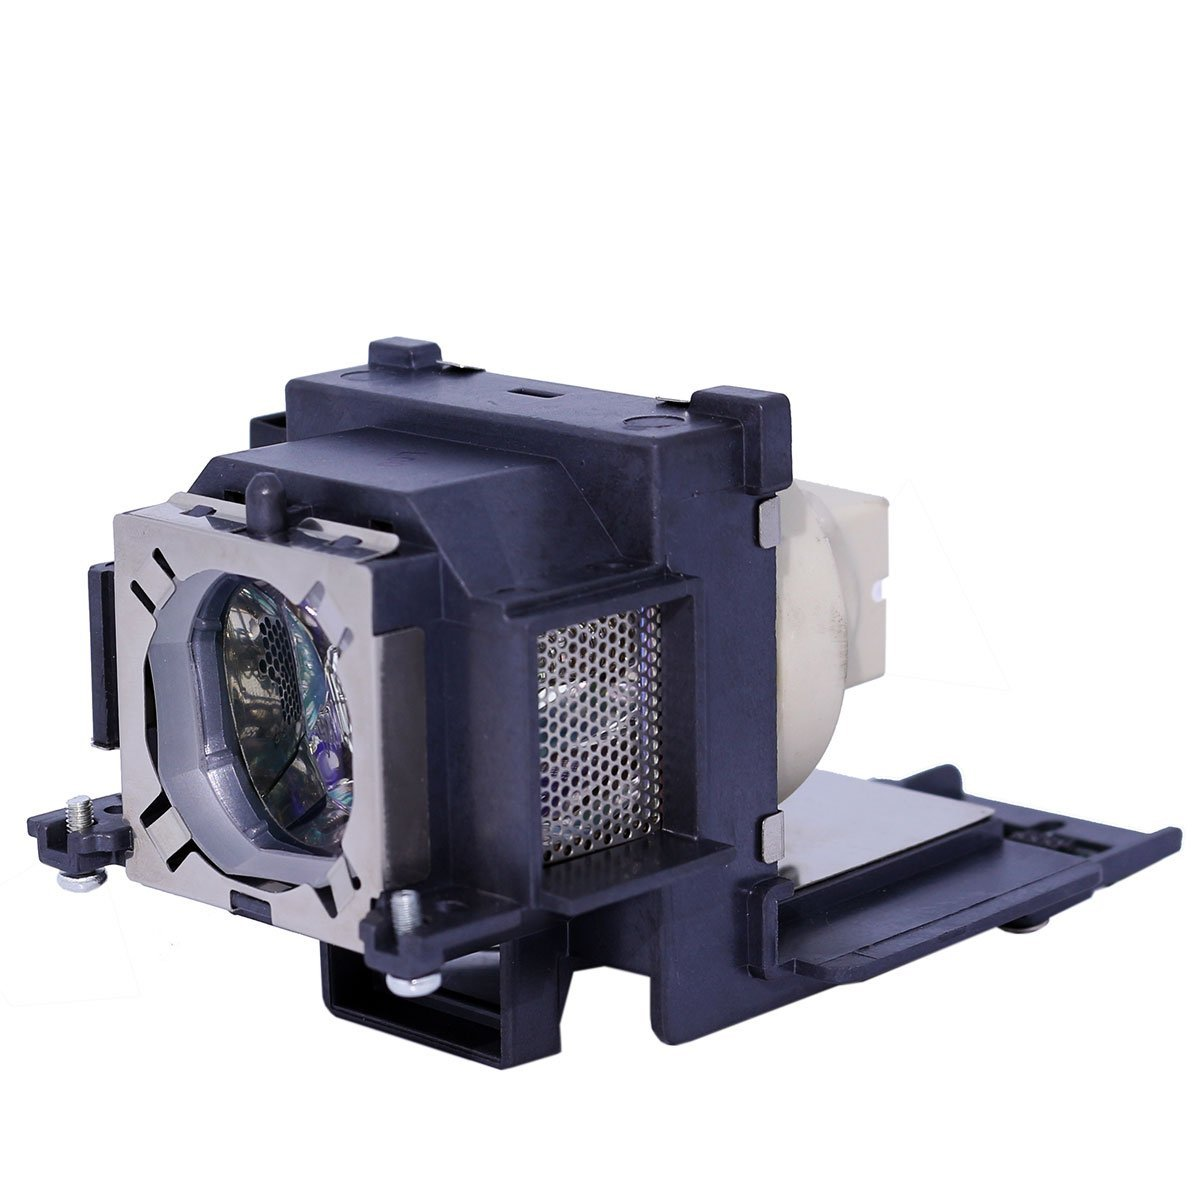 ET-LAV100 - High Quality Replacement Lamp with Housing for Panasonic PT-VW330 / PT-VX400 / PT-VX400NT / PT-VX41 Projector projector lamp original bare blub lav100 for panasonic pt vw330 pt vx400 pt vx41